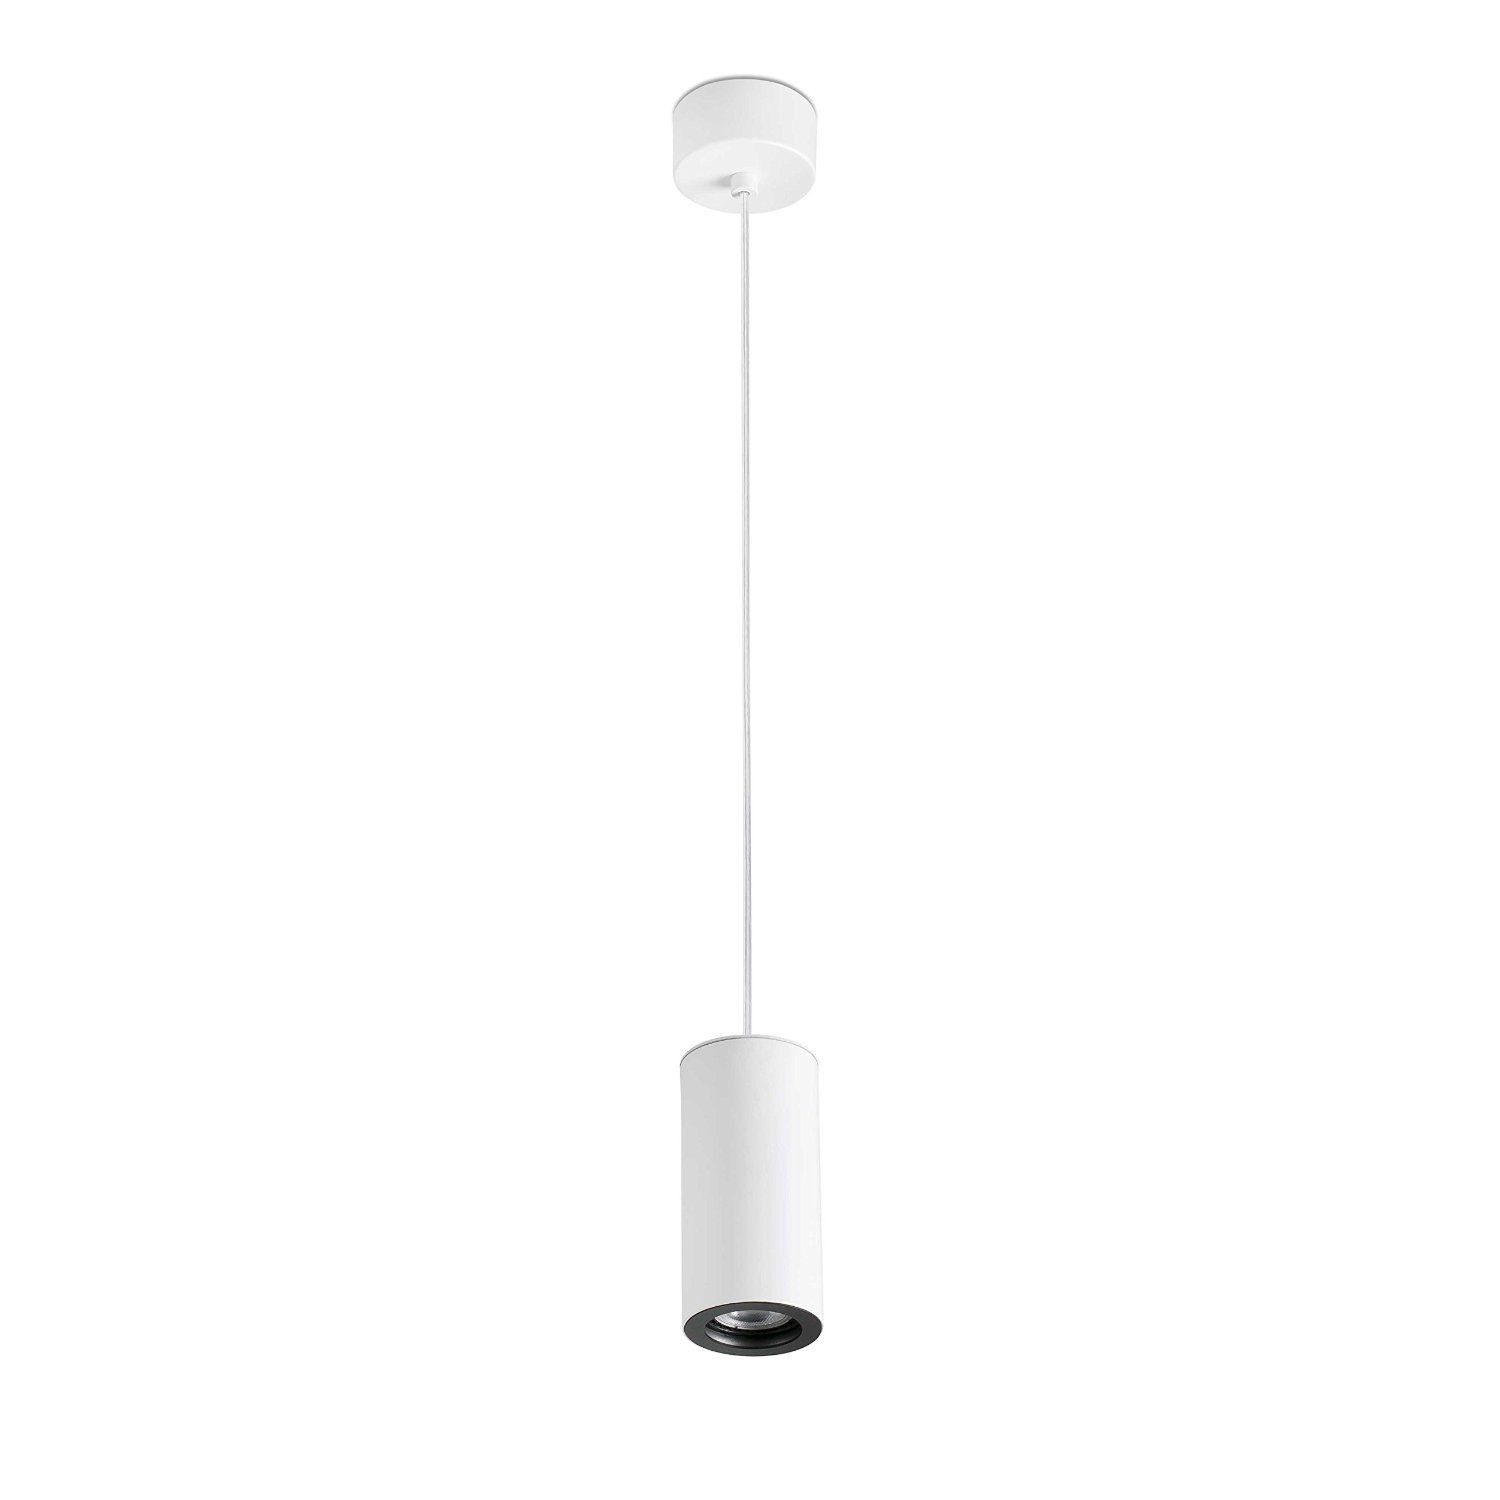 Suspension Blanche Faro 64191 Nan Lampe Suspension Blanche Amazon Fr Luminaires